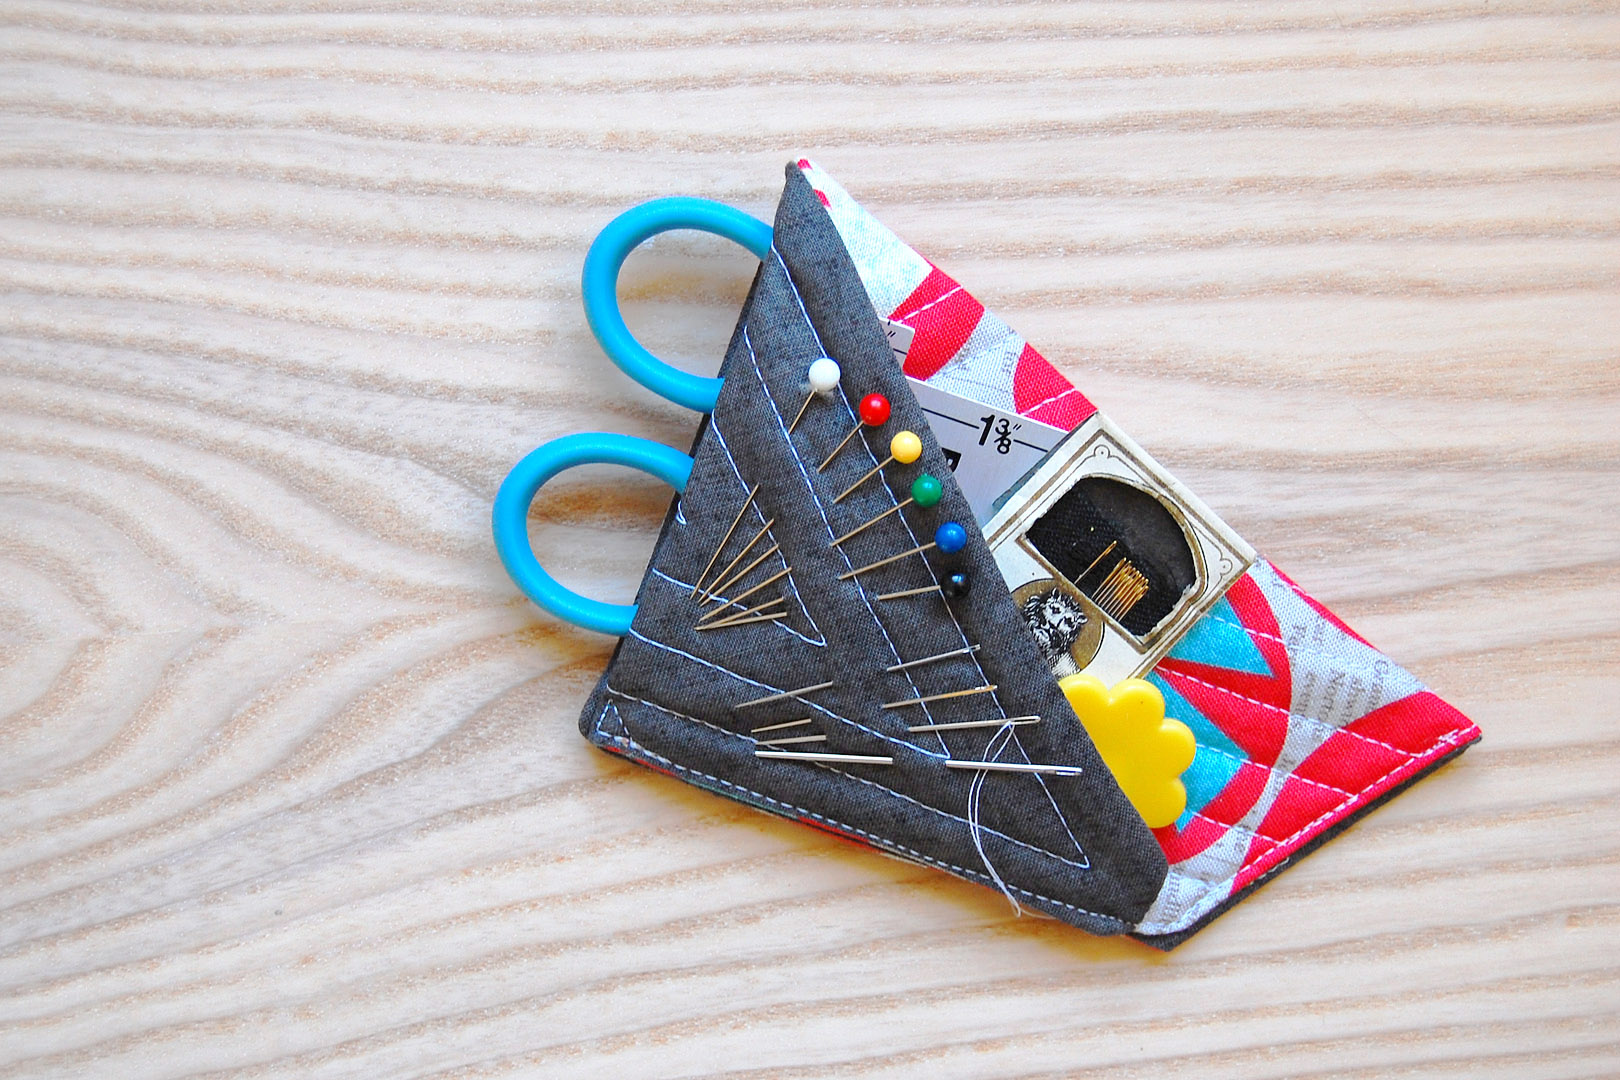 Small-Scissors-Case-Tutorial-at-WeAllSew-1620-x-1080-full-of-notions.jpg (1620×1080)